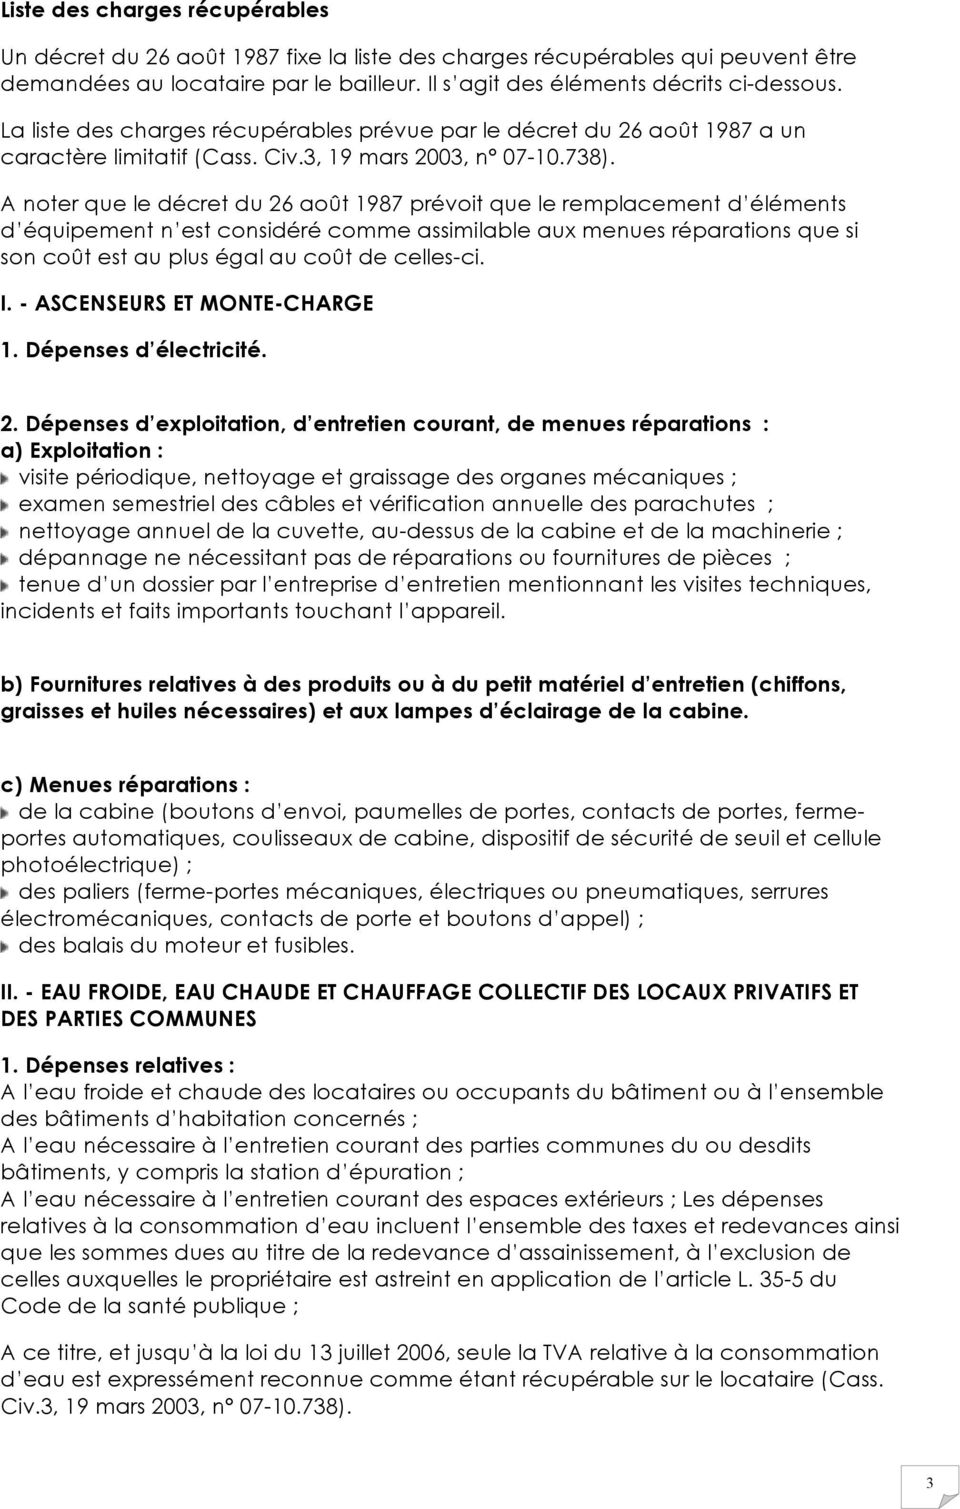 Charges Charges Recuperables Et Reparations Locatives Pdf